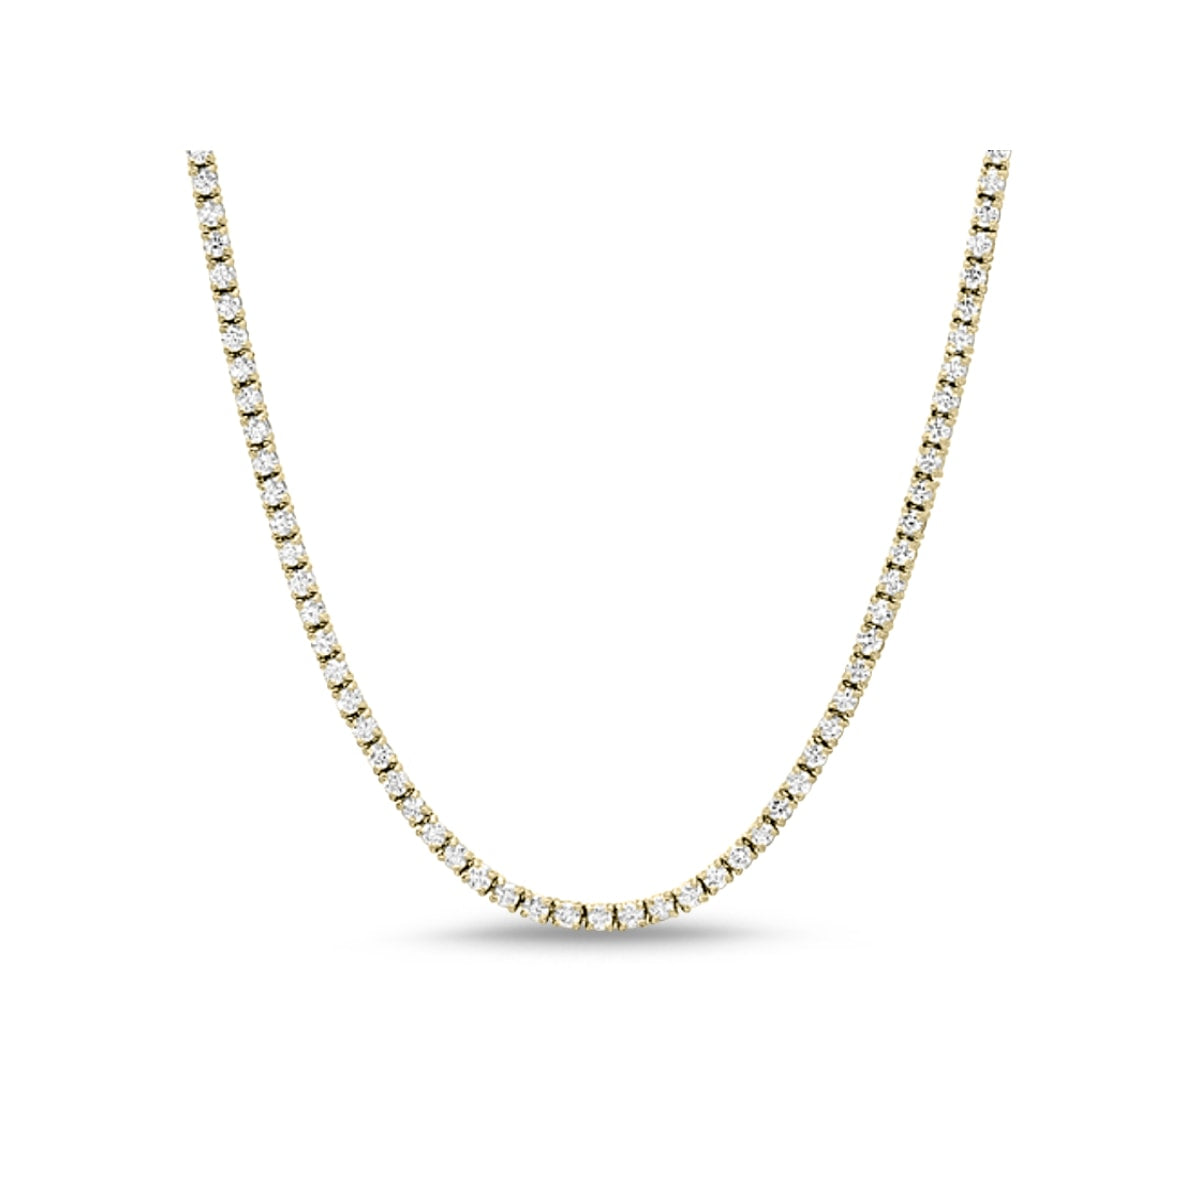 Monette 4 Prong Diamond Necklace in 18k Gold Vermeil